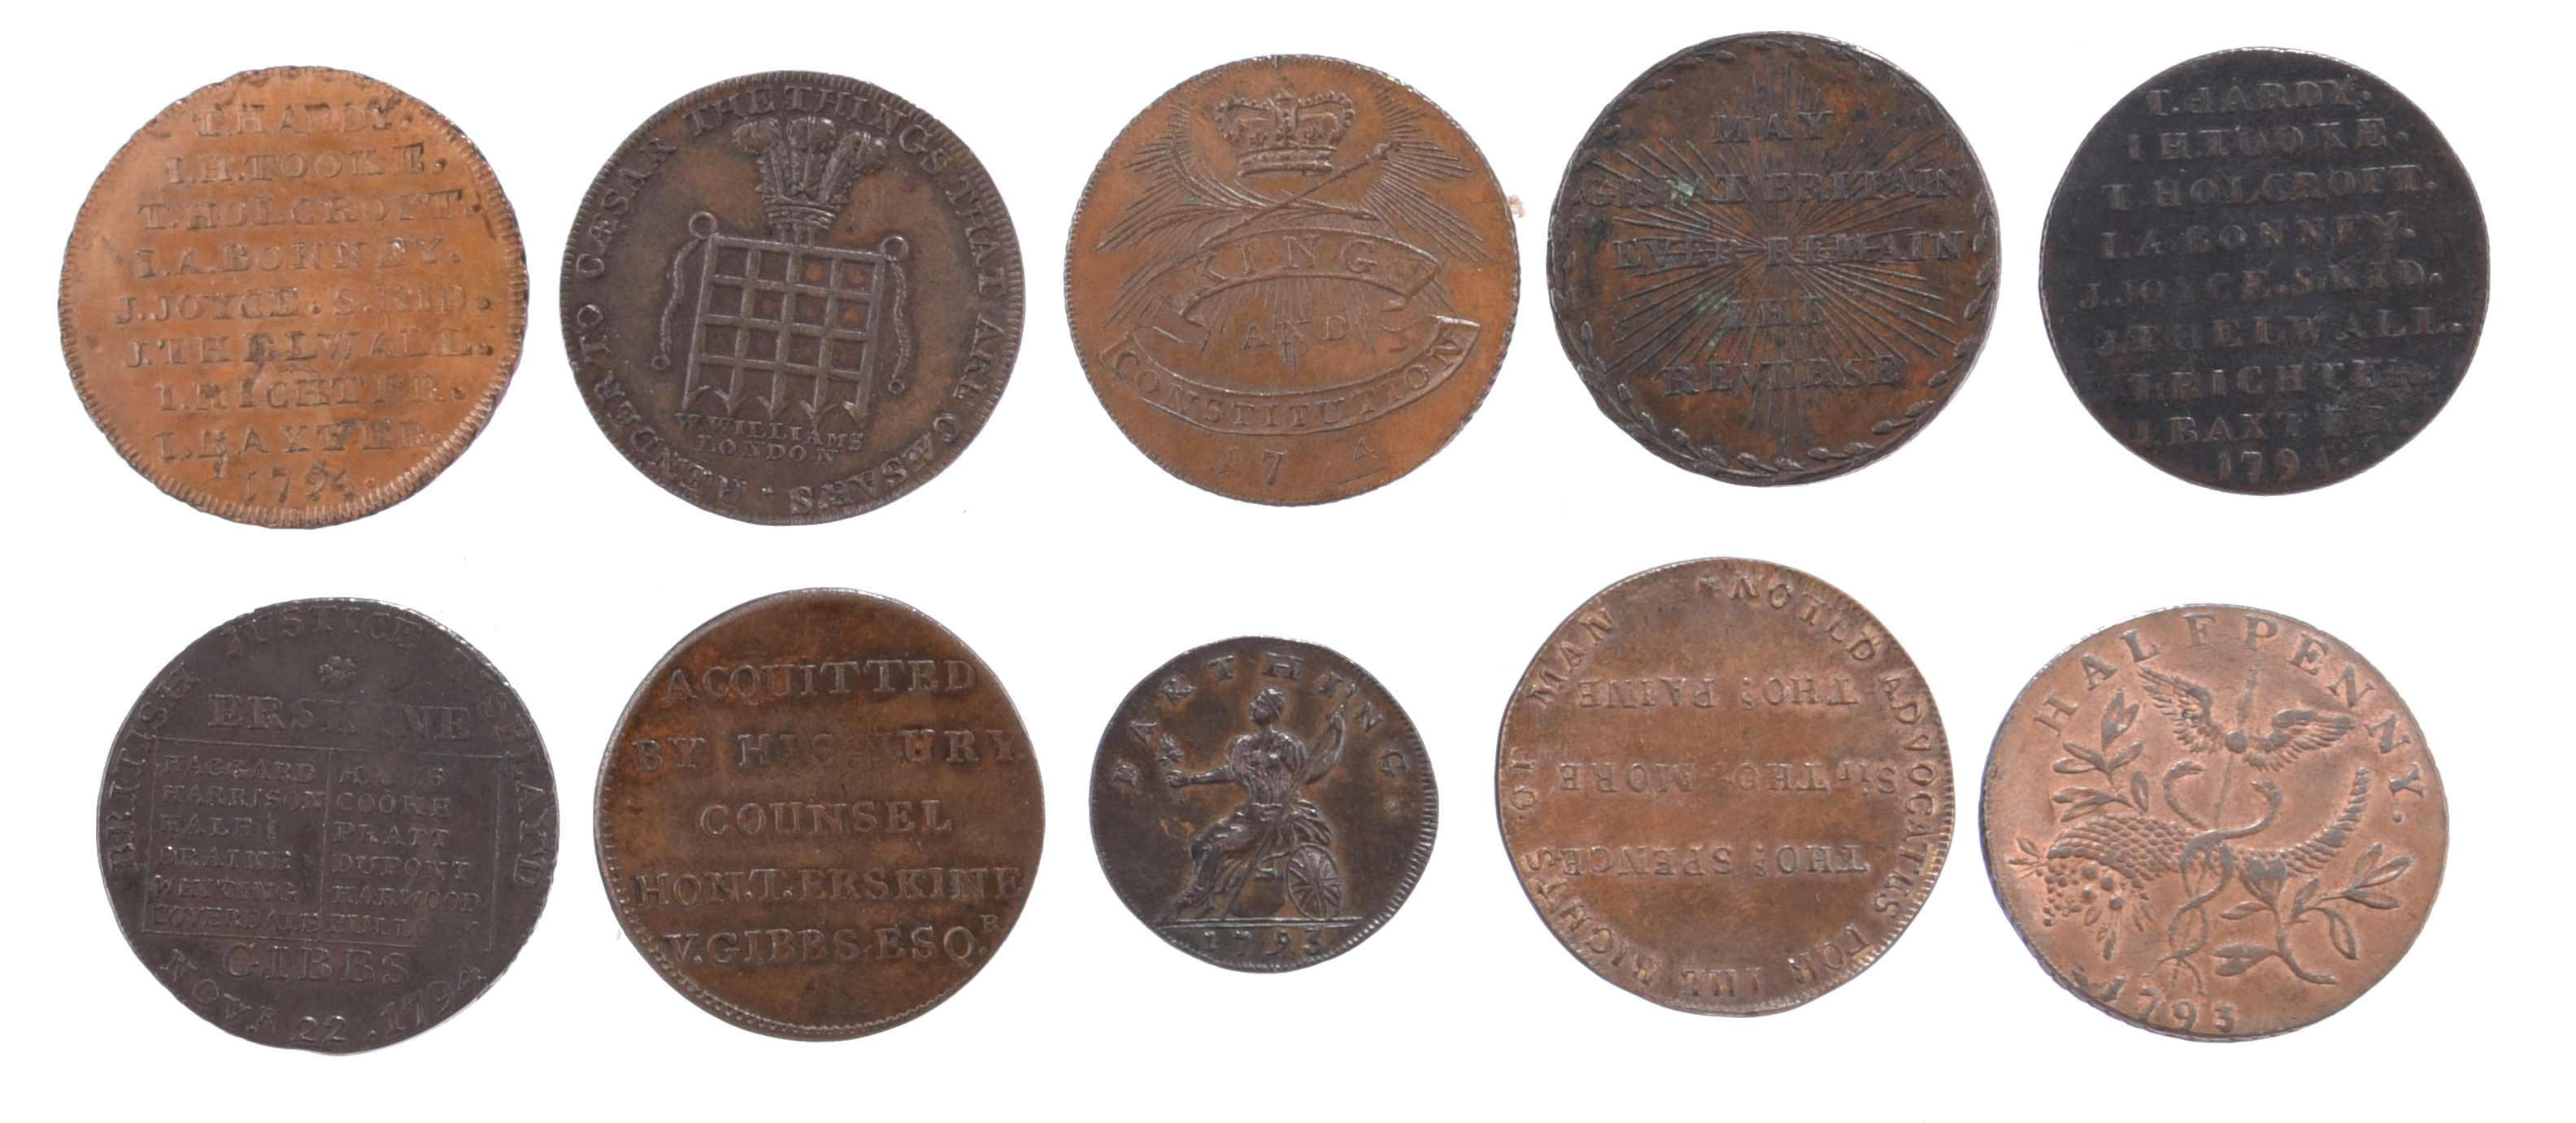 Eighteenth century halfpenny tokens, Middlesex, including: Erskine & Gibbs, barristers holding - Image 2 of 2